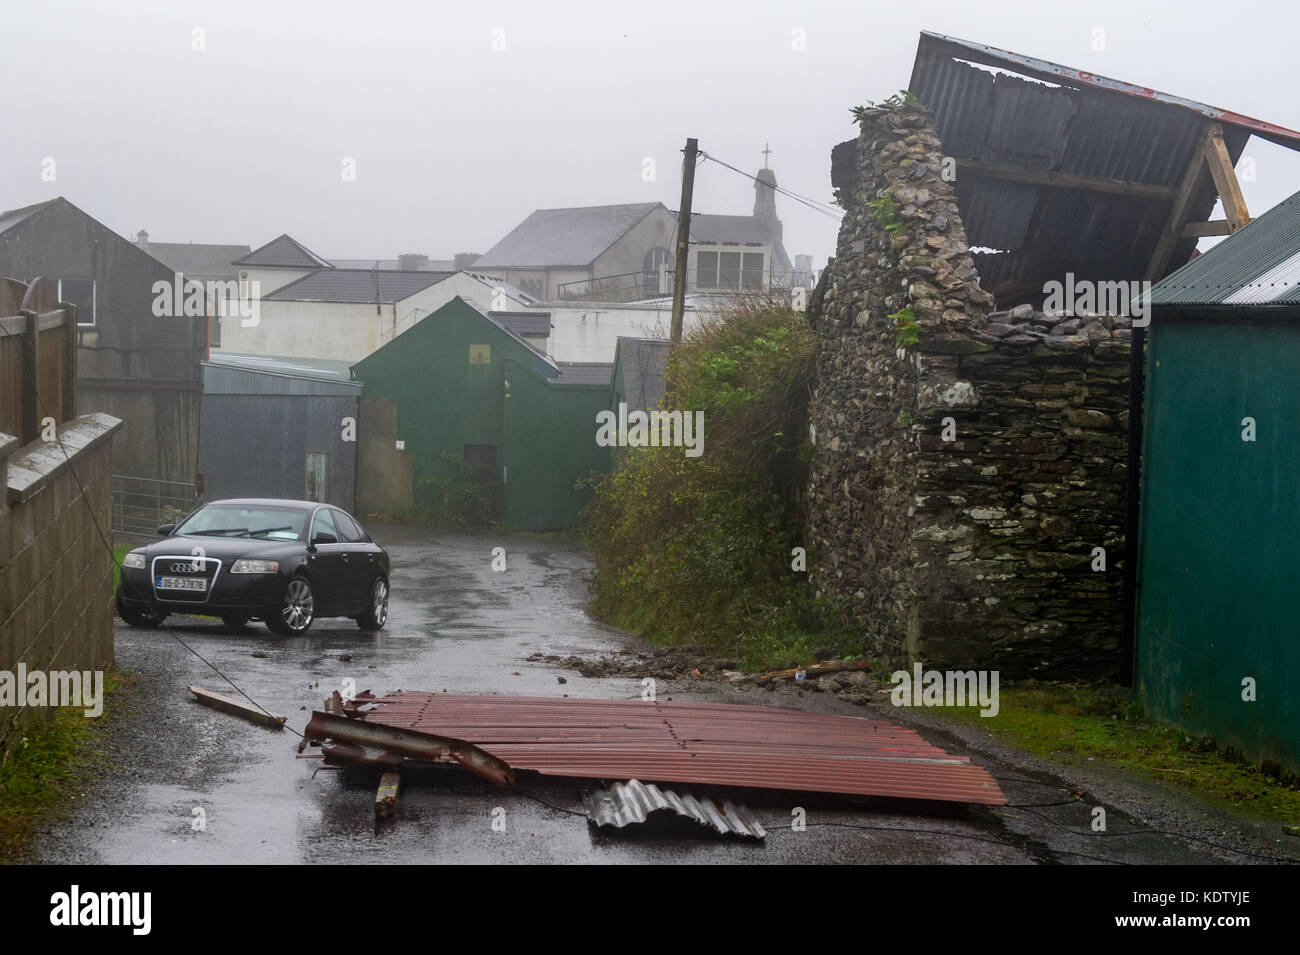 schull-ireland-16th-oct-2017-uk-weather-